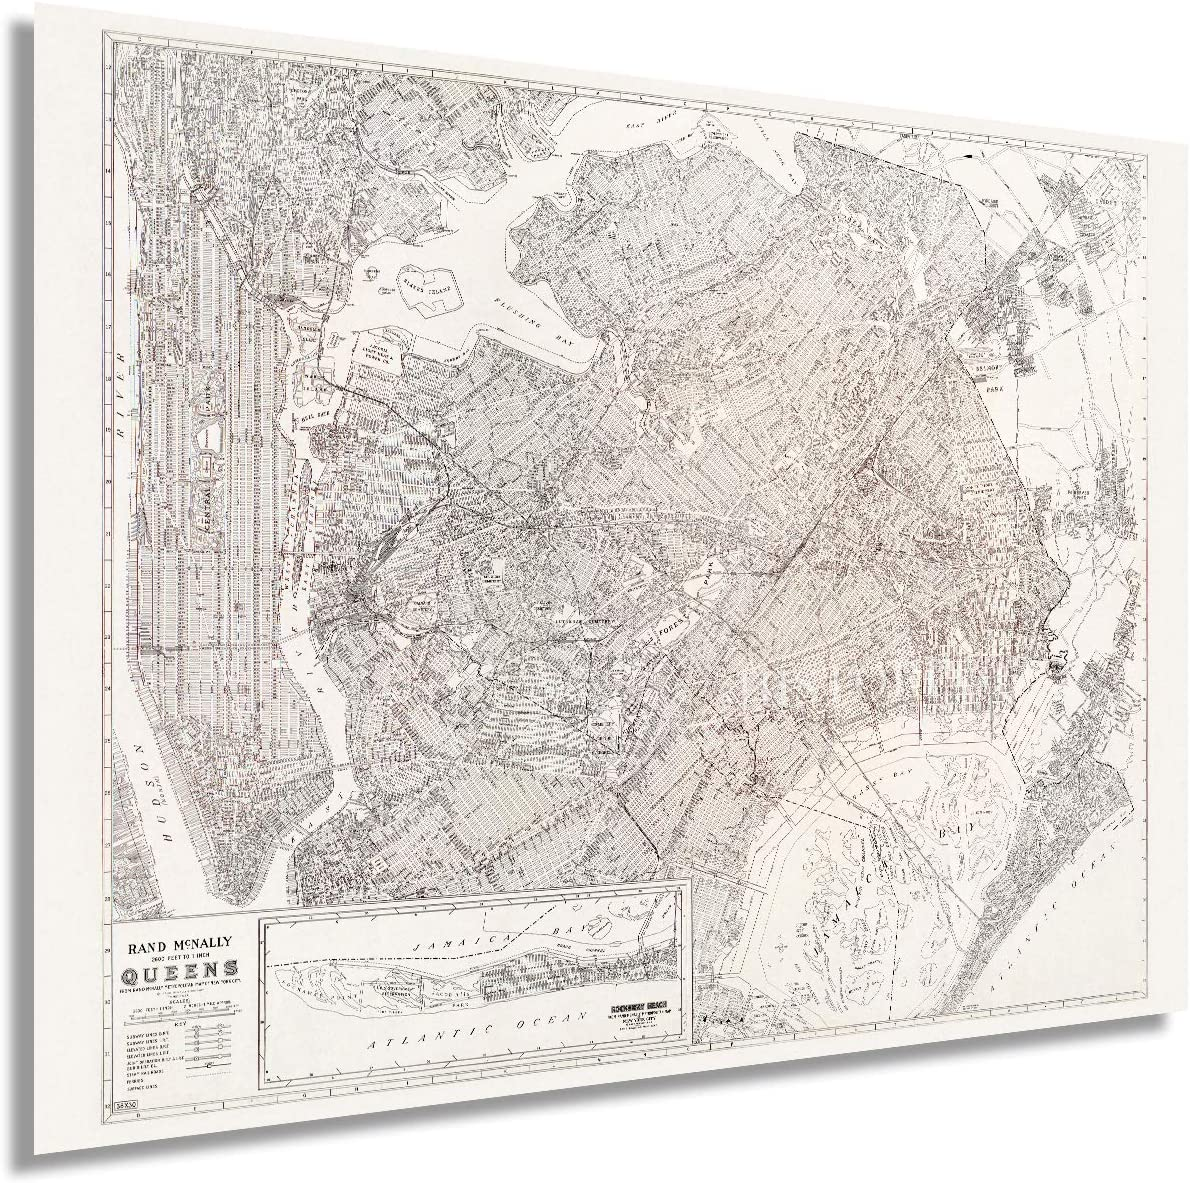 HISTORIX Vintage 1922 Queens New York City Map Poster - 18x24 Inch Queens NYC Map Wall Art Decor - Old Metropolitan Map of New York City - Includes Inset of Rockaway Beach (2 Sizes)